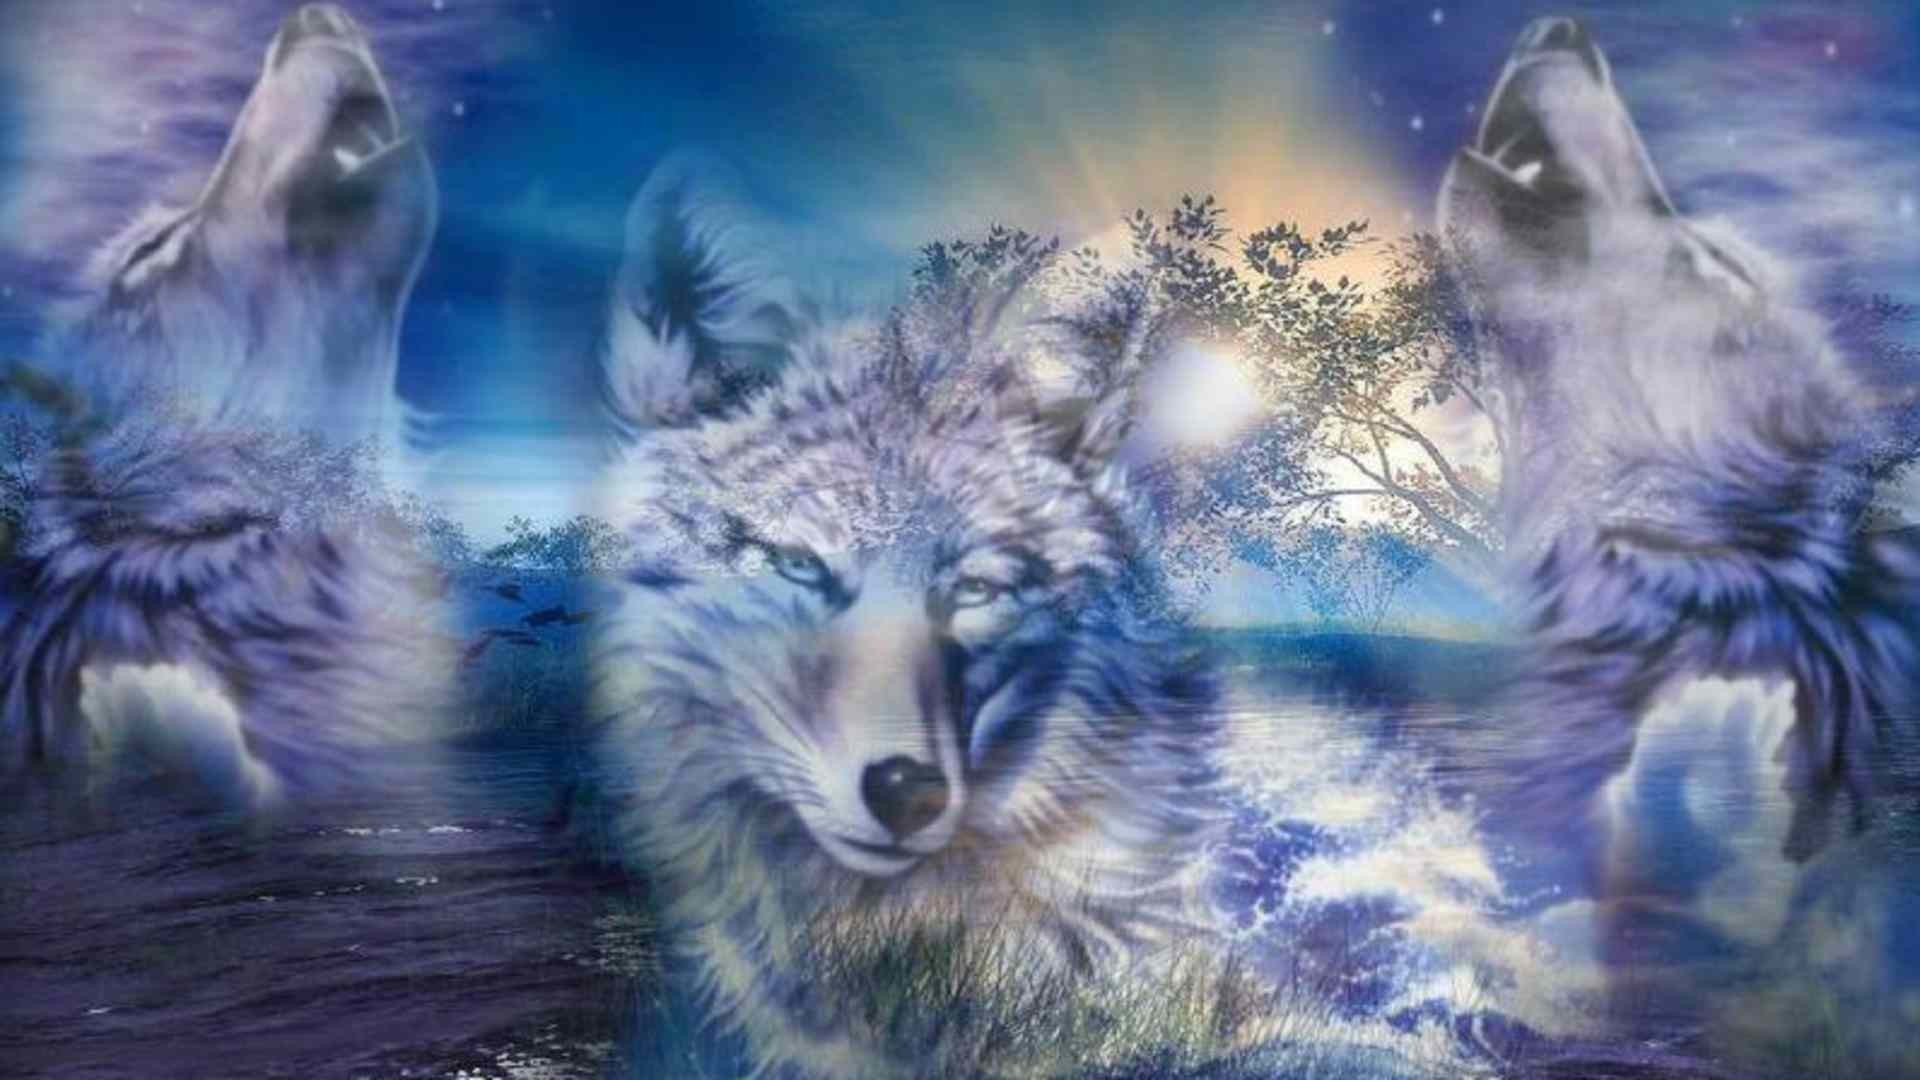 1920x1080 Desktop-HD-Wolf-3D-Wallpaper.jpg (1920×1080) | <3 I LOVE WOLFS <3 |  Pinterest | Wolf